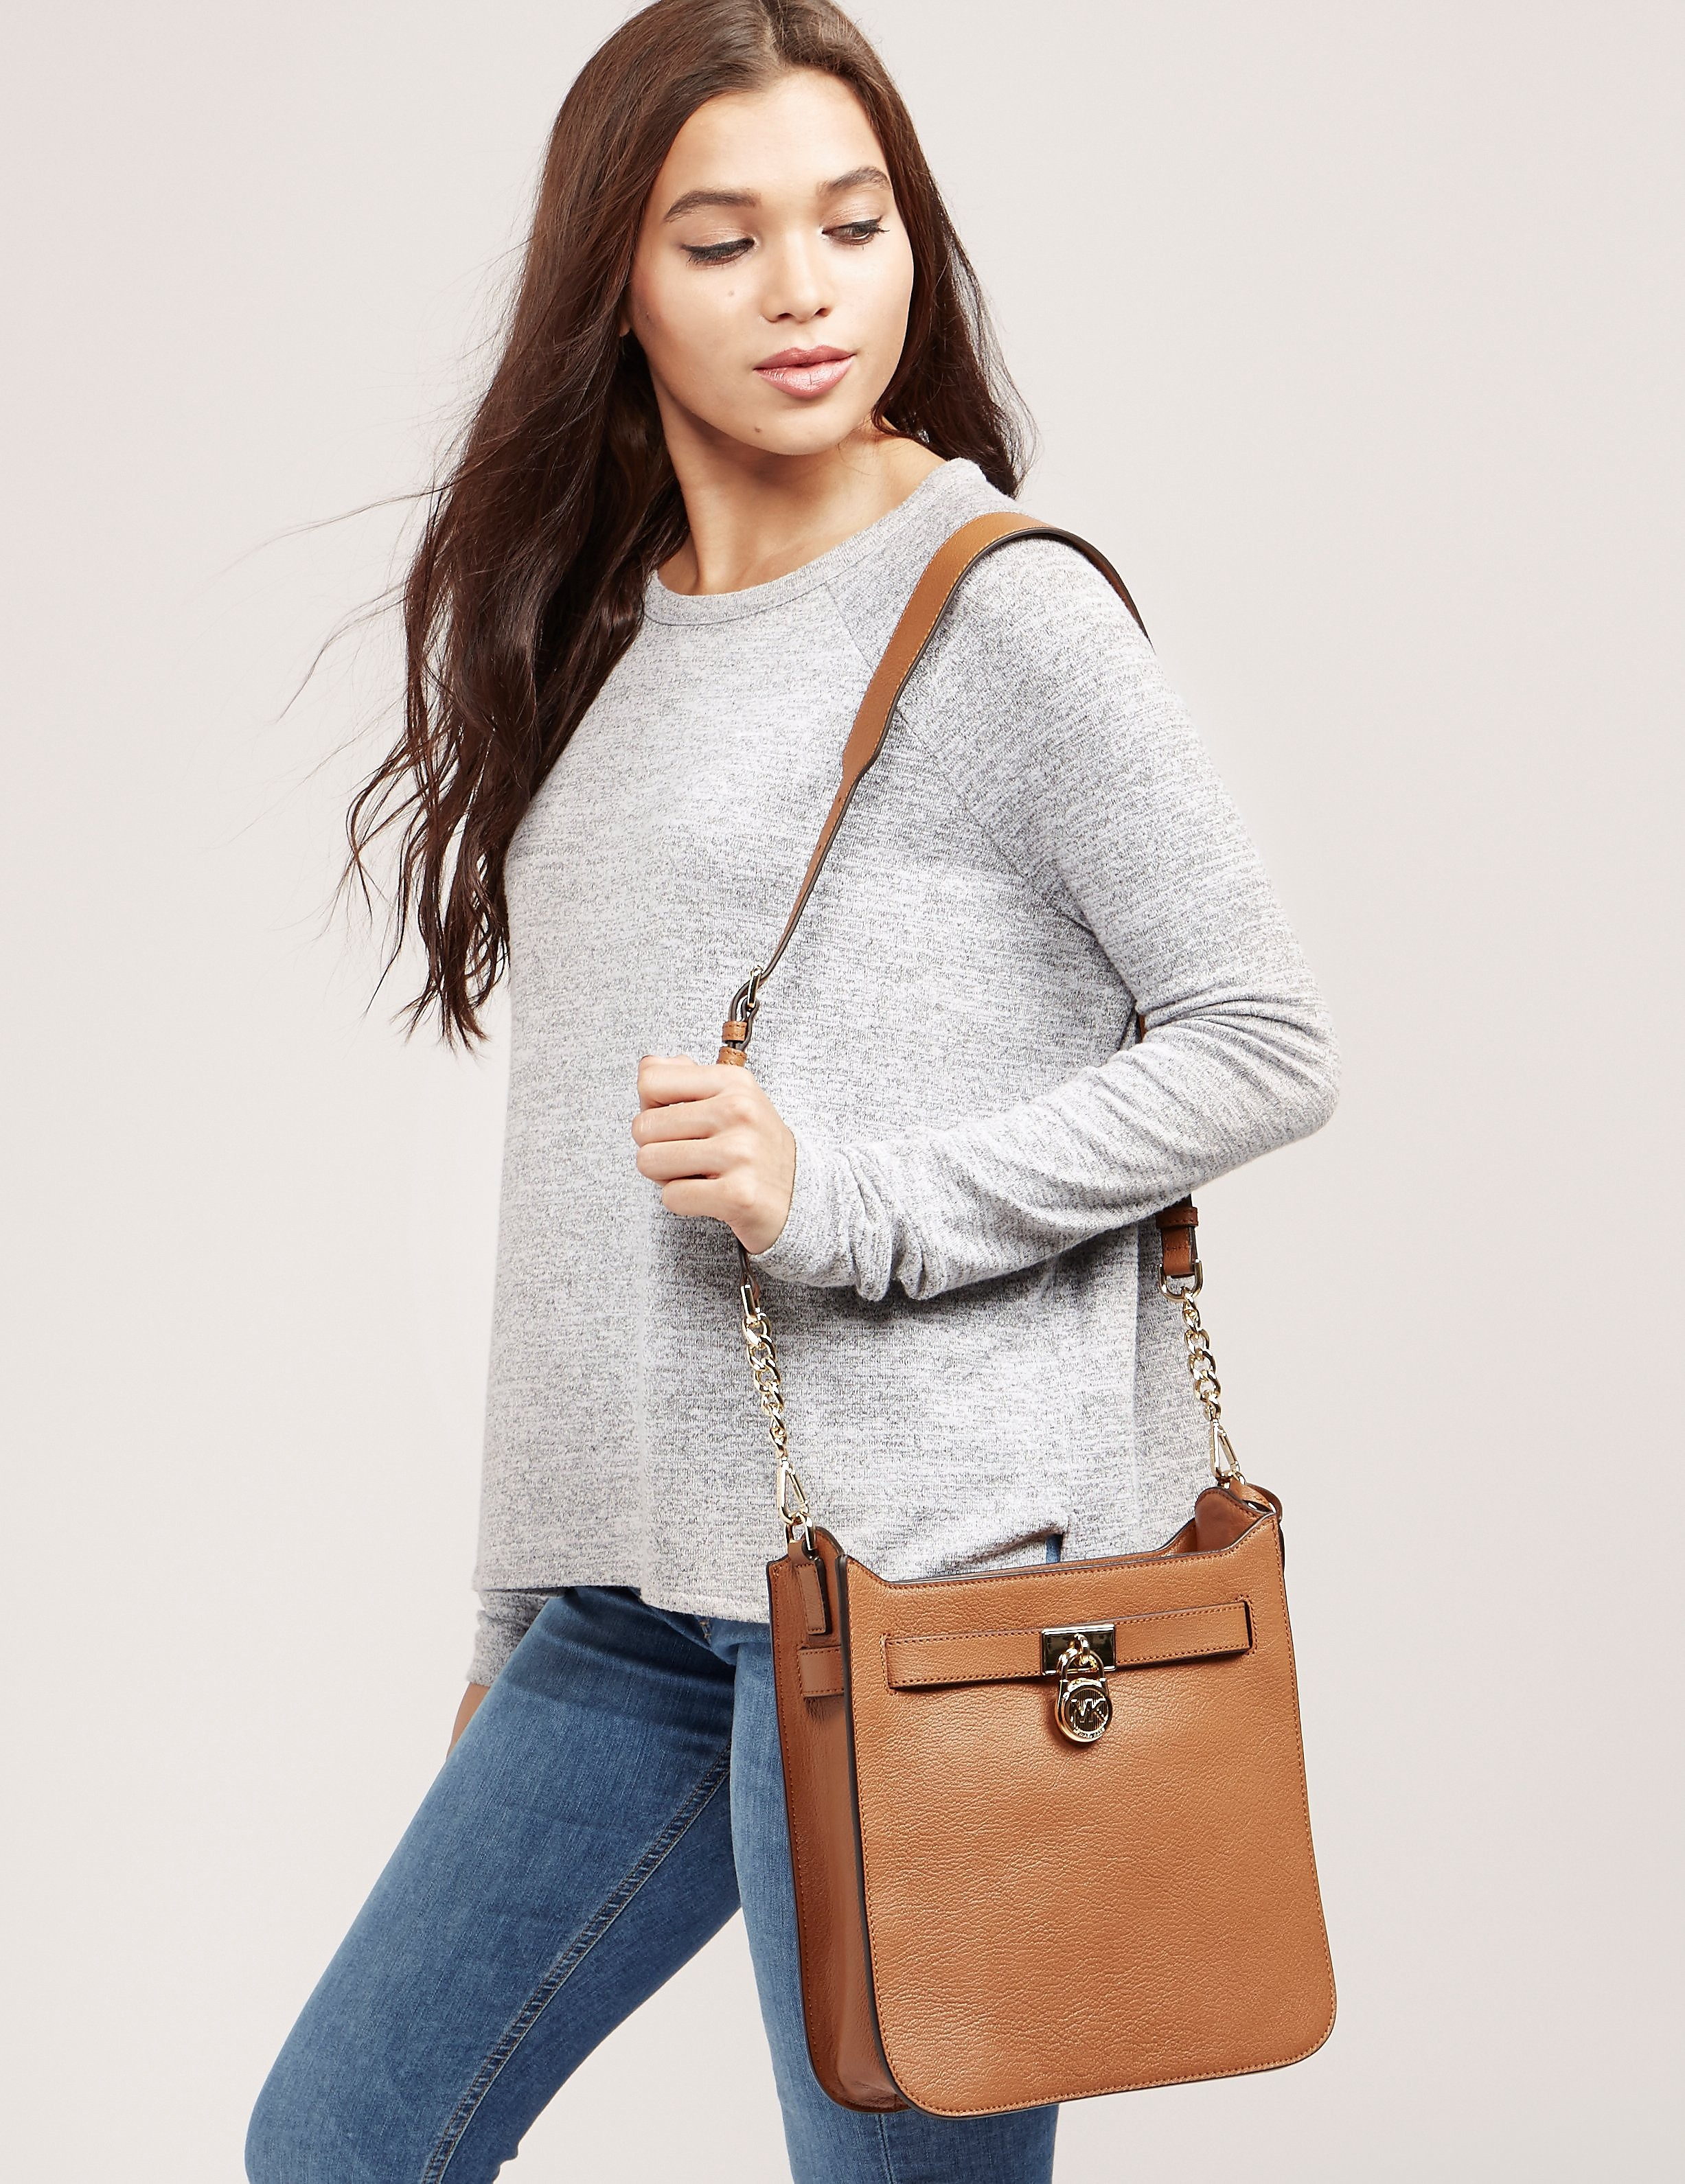 Michael Kors Hamilton Messenger Bag